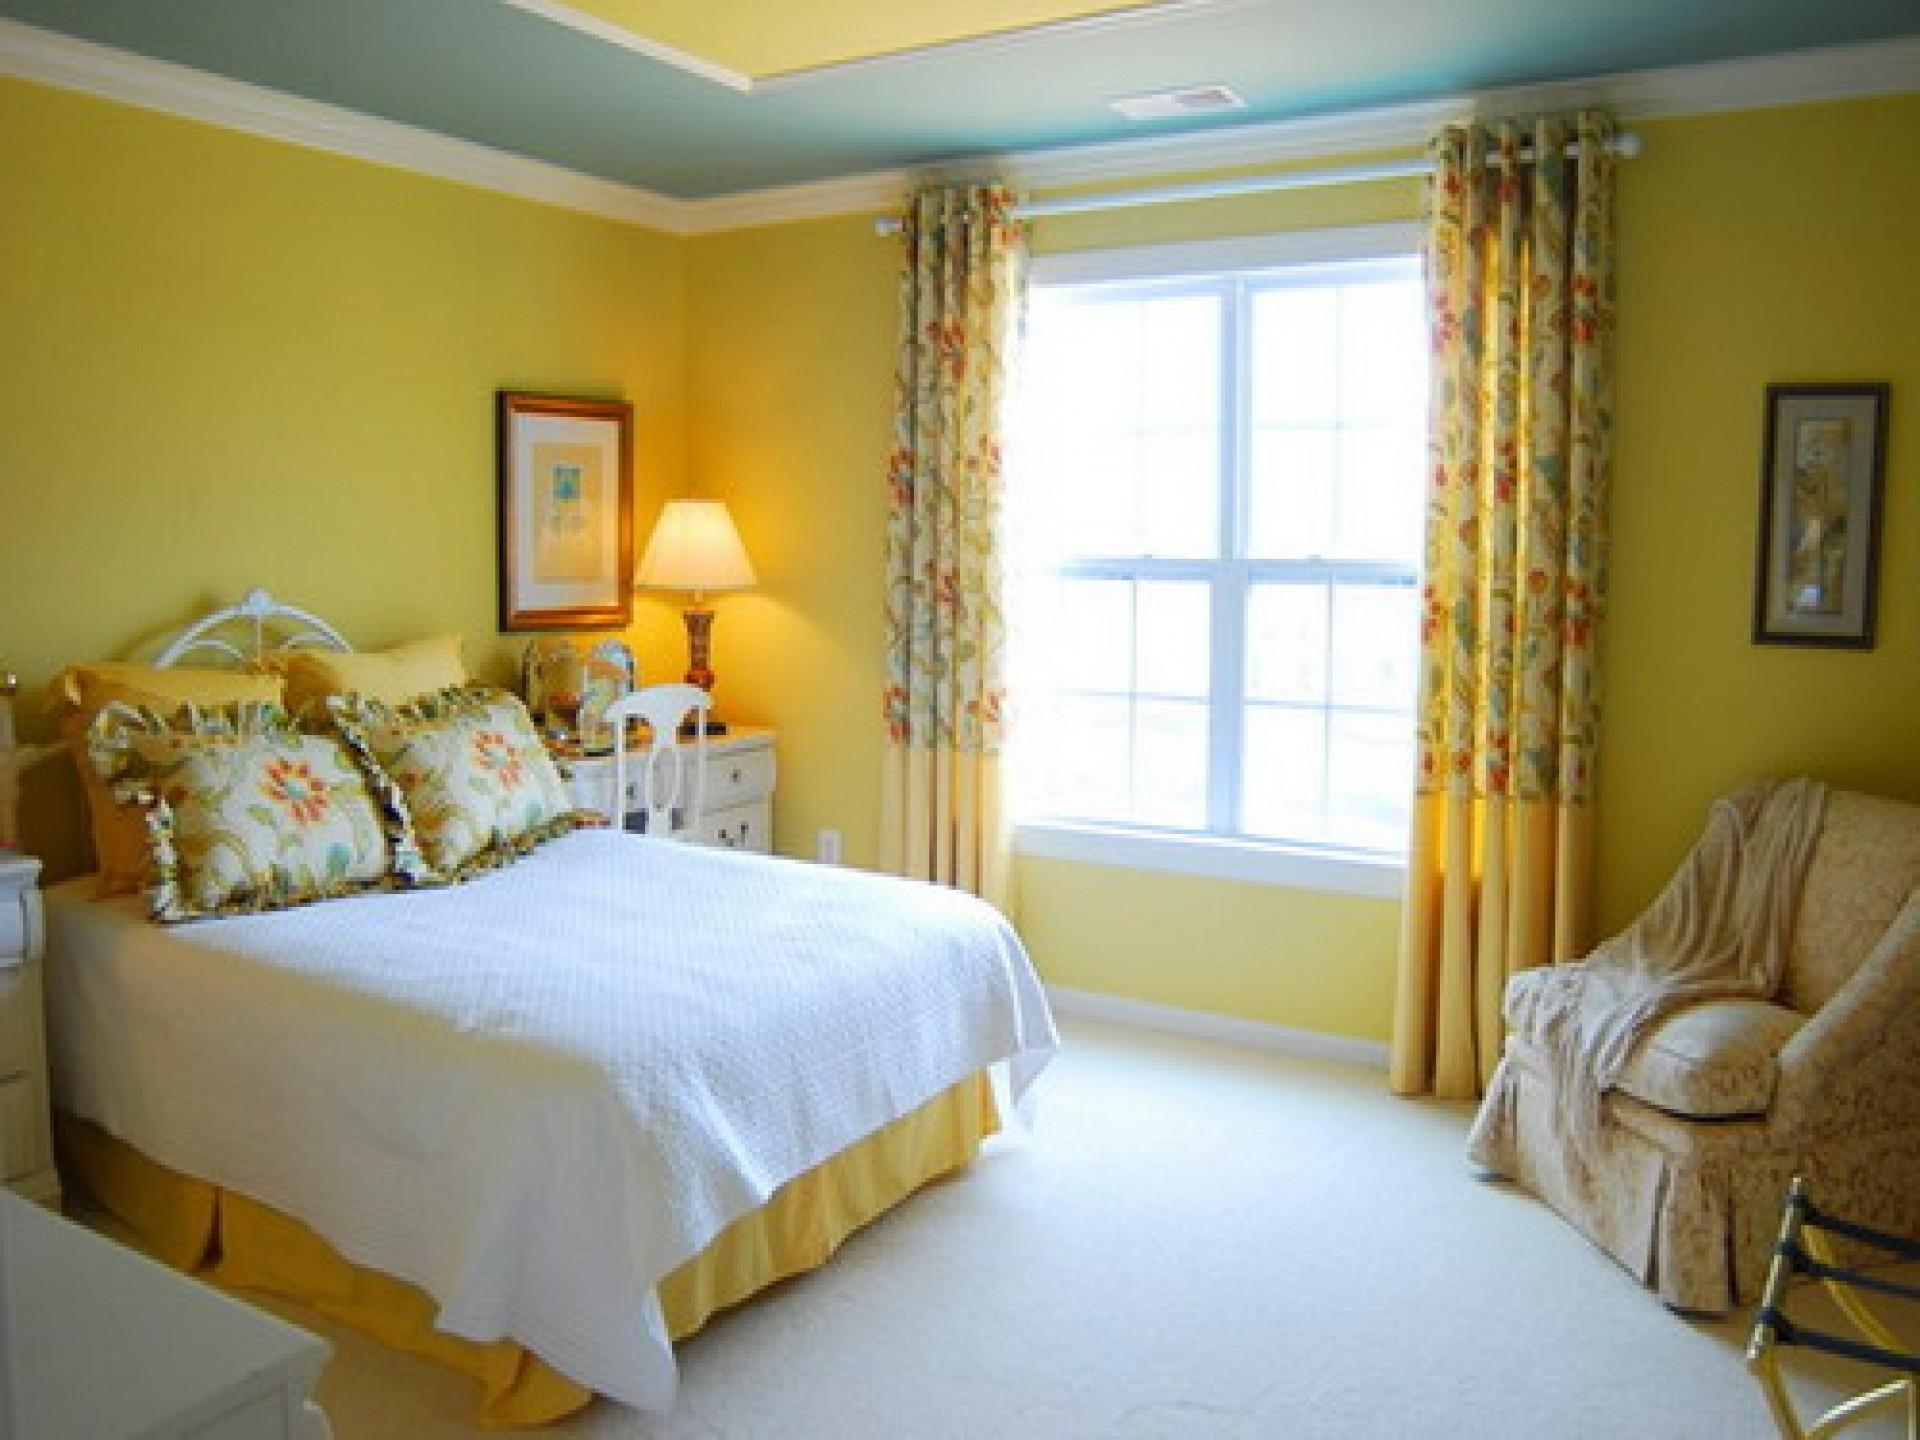 Color Combinations Ideas Girls Bedroom Walls Fabulous Decoratorist 63486